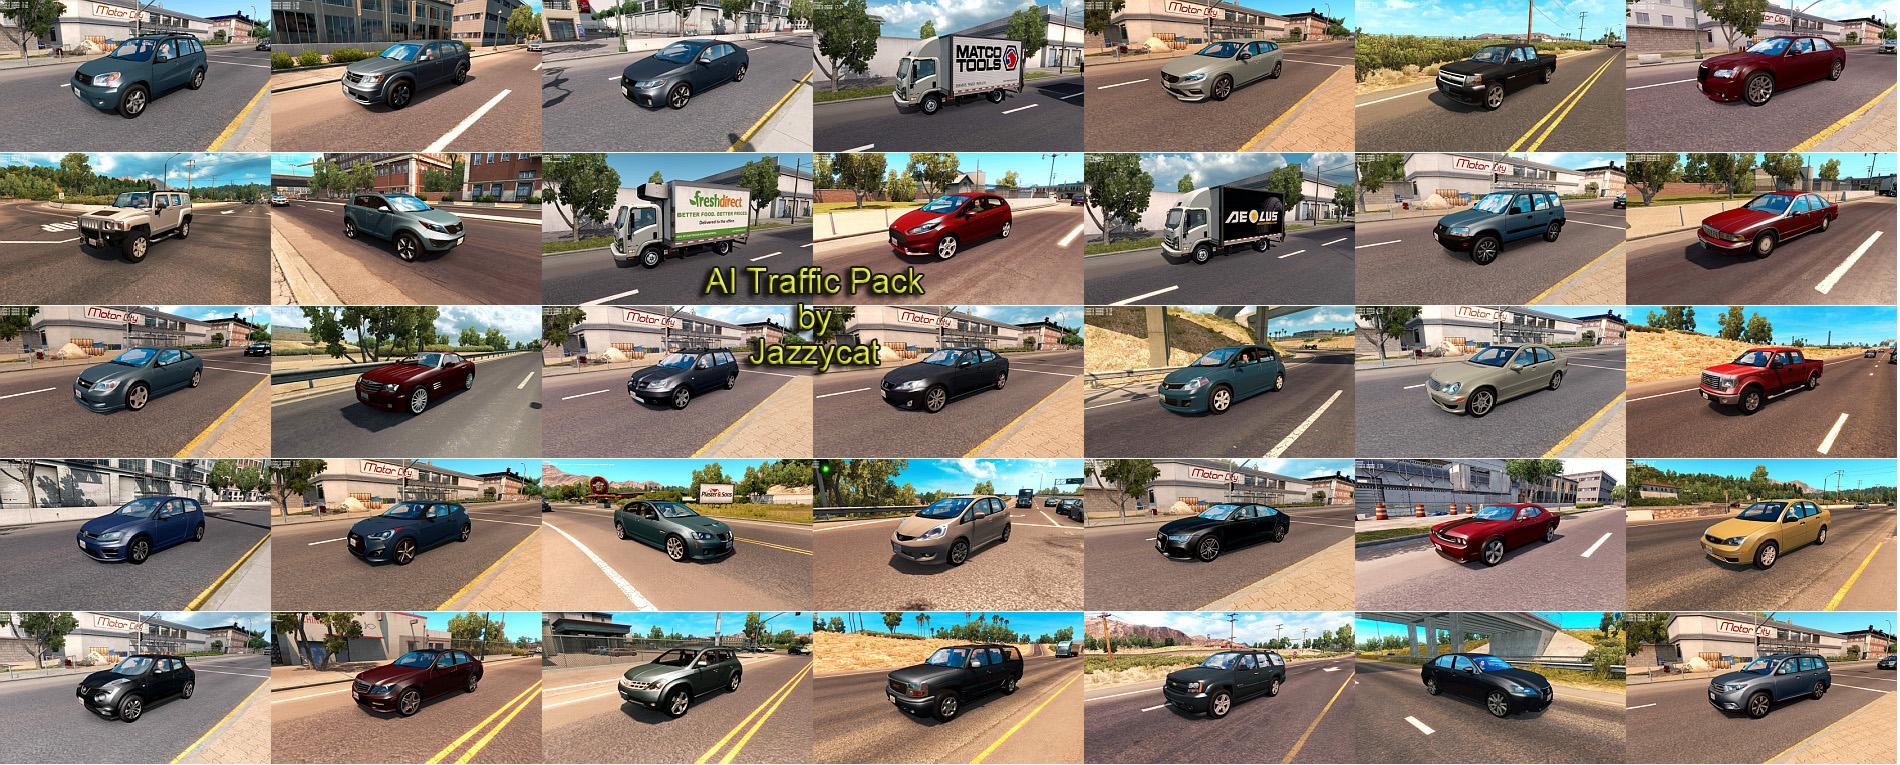 AI TRAFFIC PACK BY JAZZYCAT V3 8 for ATS - ATS Mod